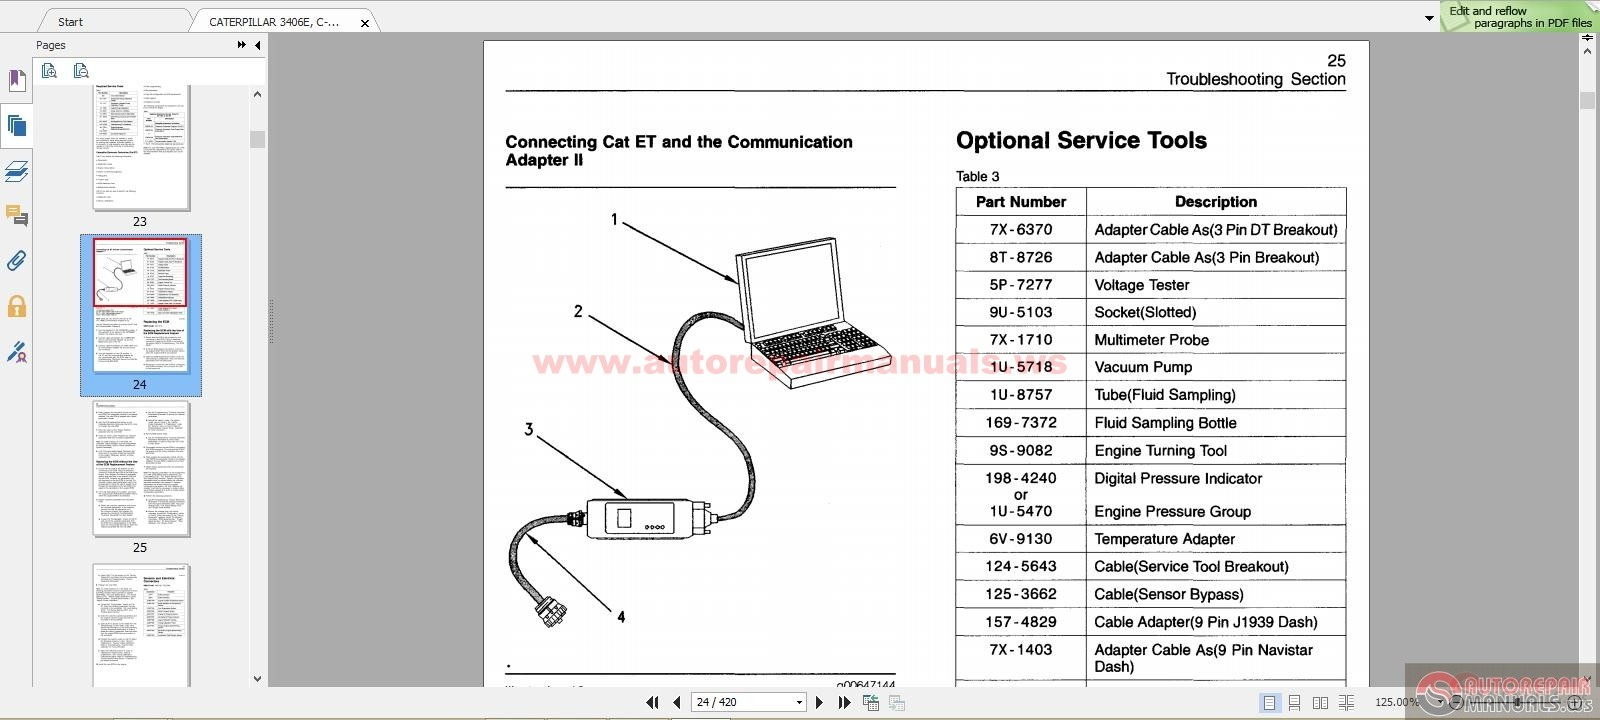 caterpillar c12 engine diagram cat c13 engine parts diagram cat wiring diagrams